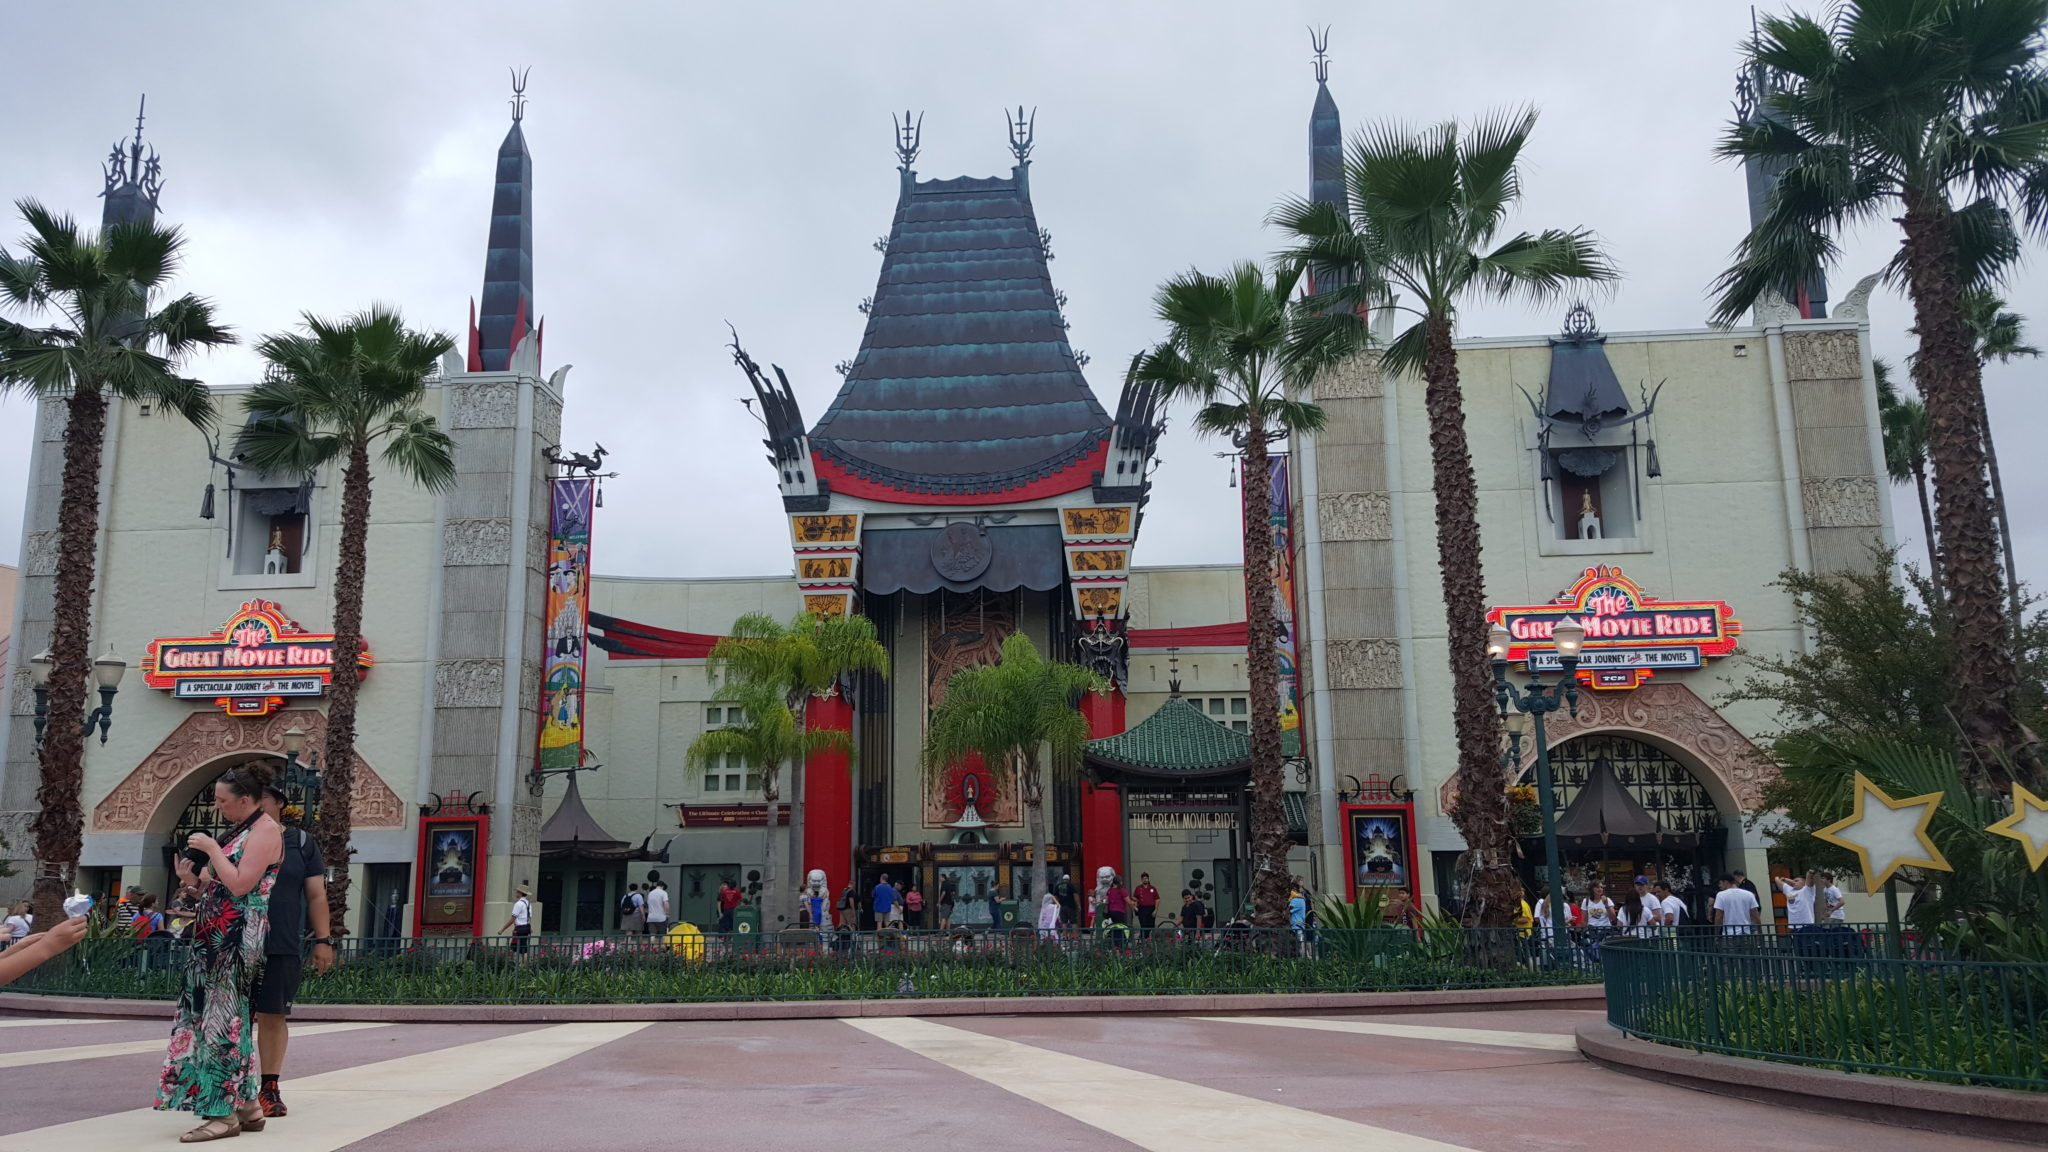 When Will The Great Movie Ride Be Closing?